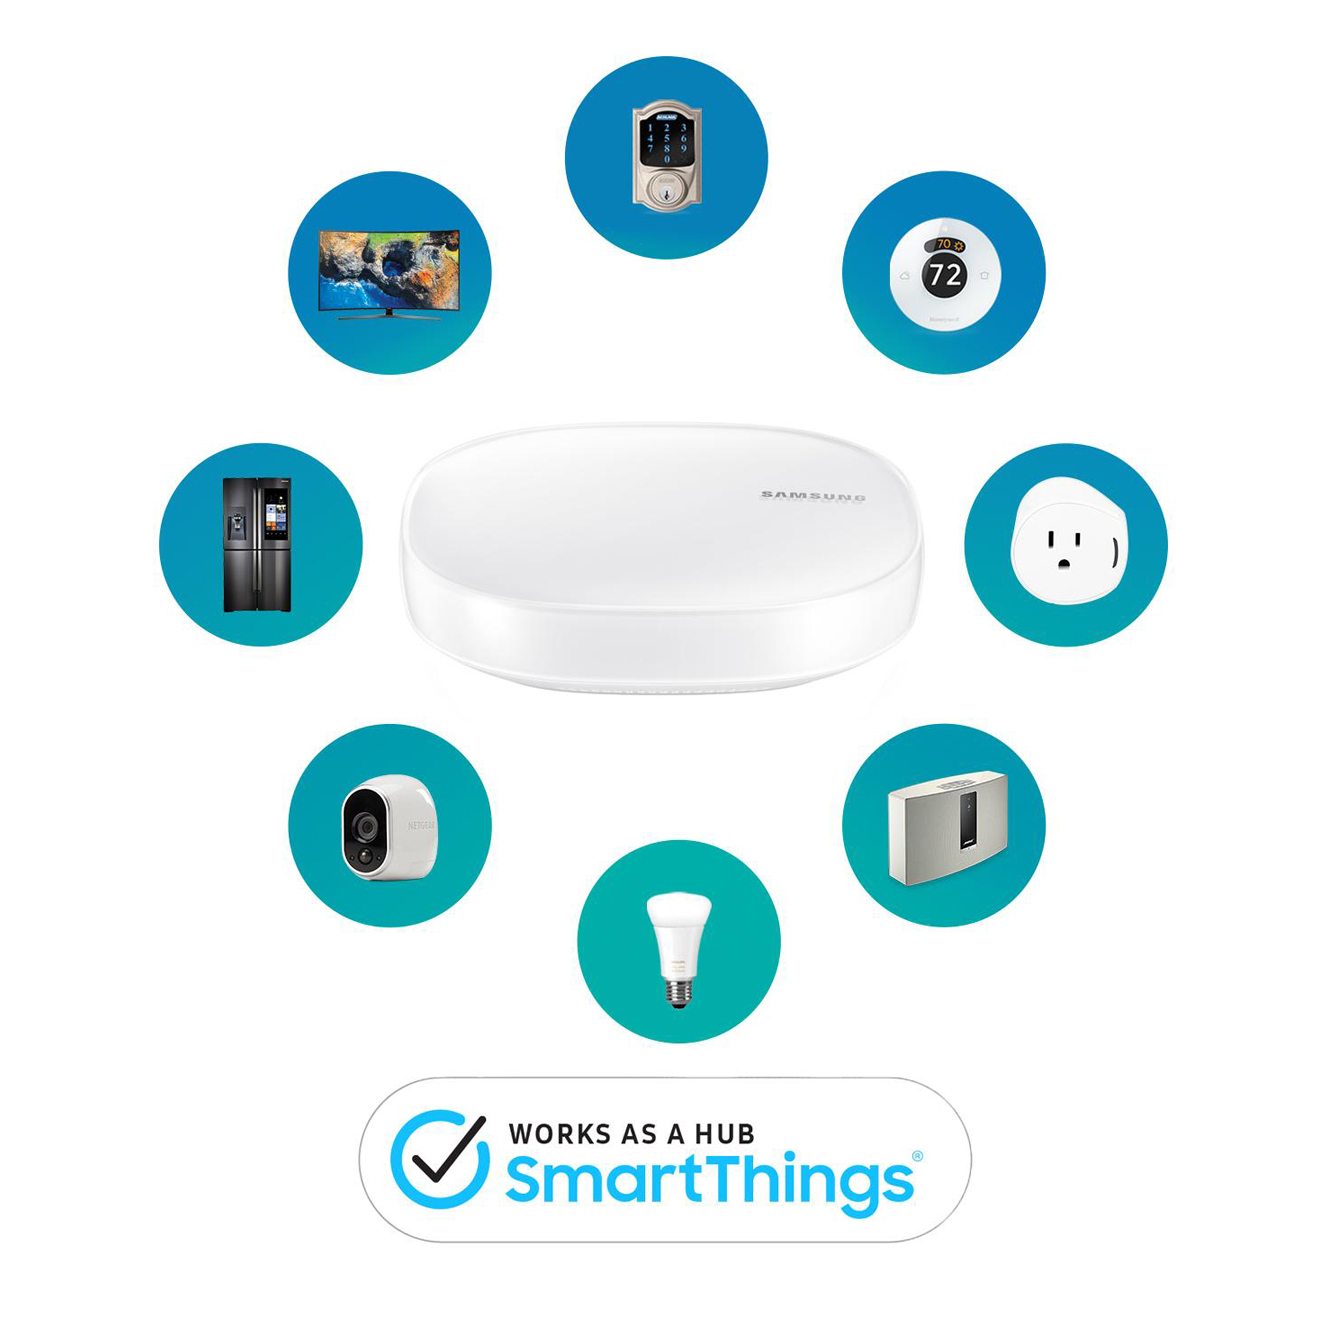 Samsung Connect Smart Wi-Fi System